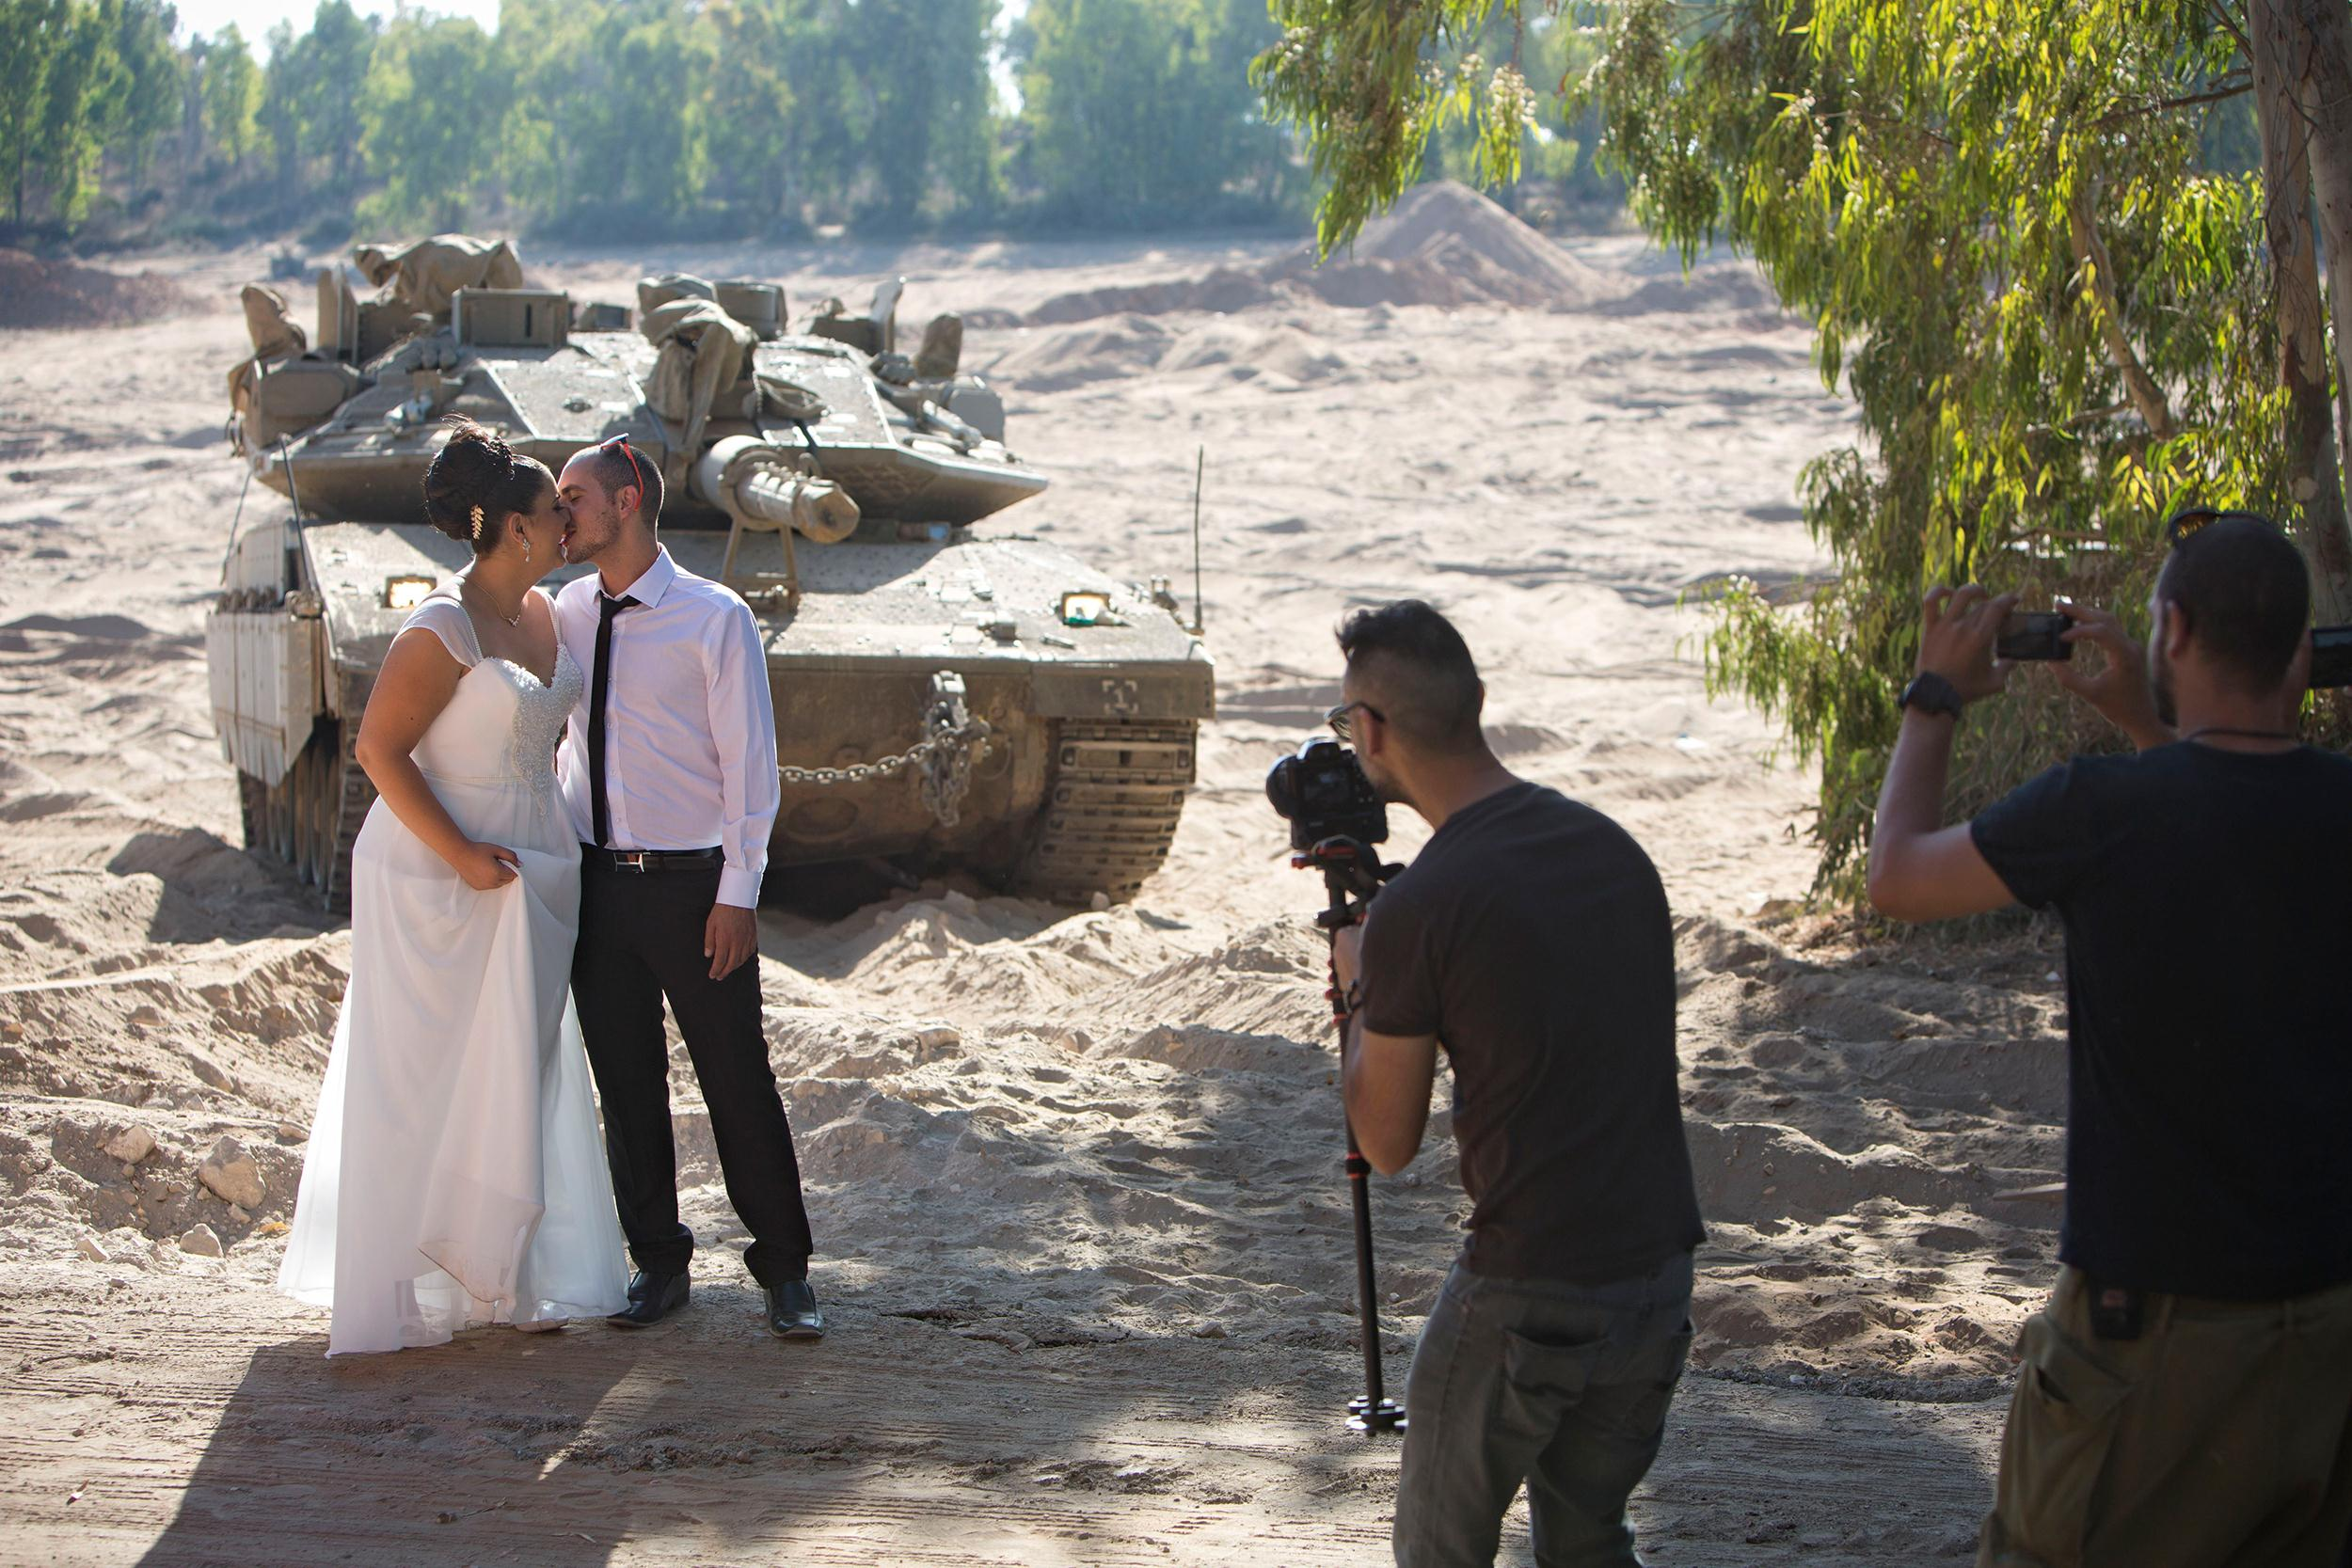 Image: Israeli couple, Noga and Moshiko Siho, have their wedding photo taken in an army staging area on the Israeli Gaza border, near Kibbutz Yad Mordechai, Israel